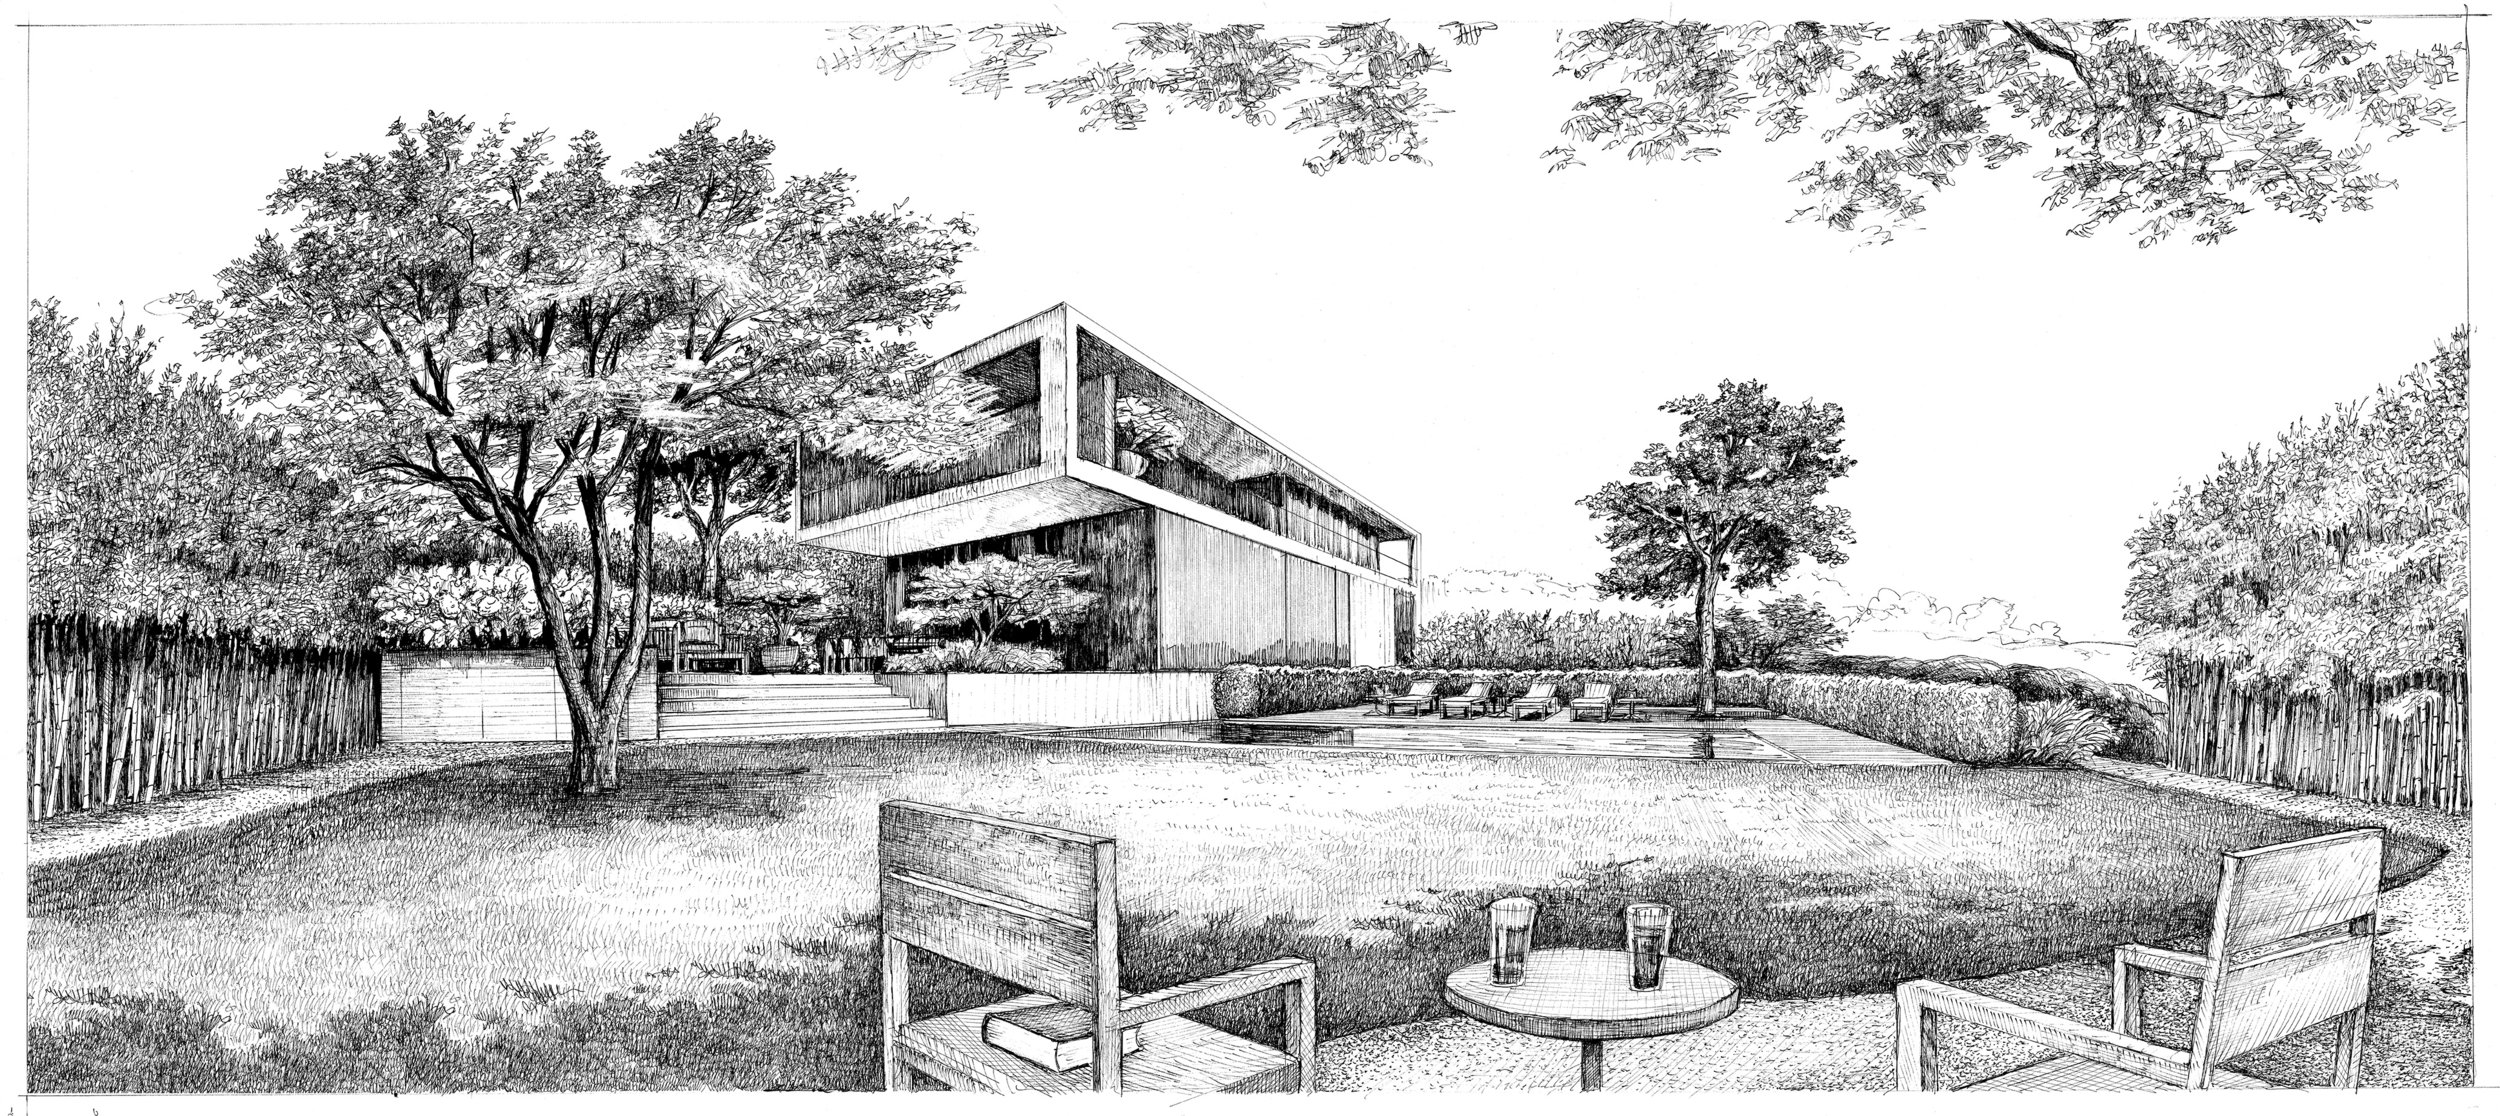 children's lawn and pool terrace view (drawn by Bruno Moser / enea landscape architecture)